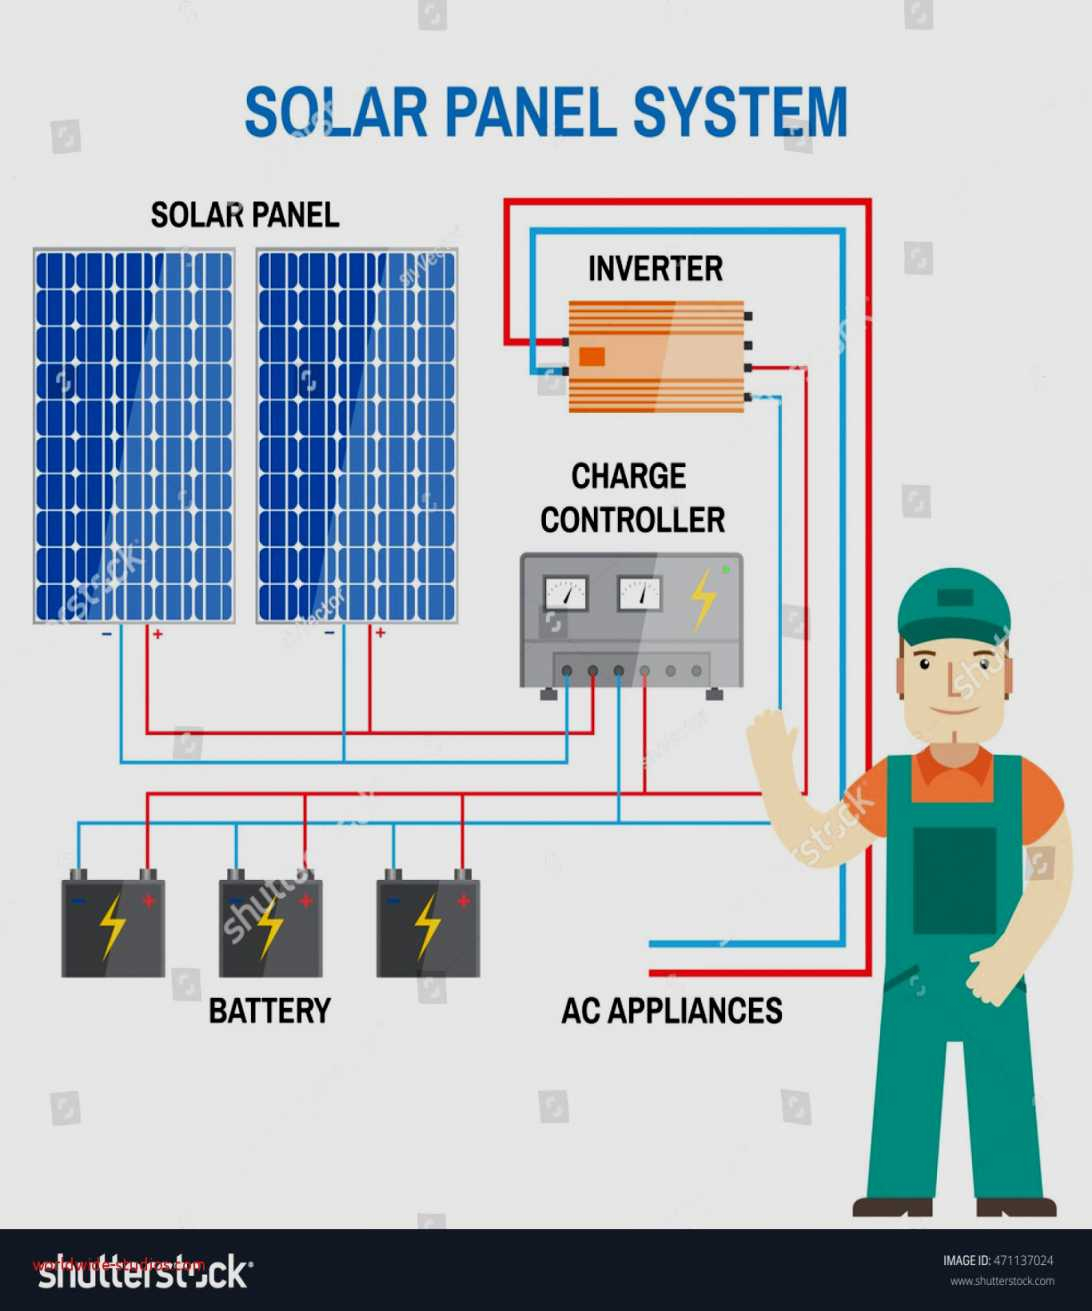 Wiring Diagrams For Solar Panel Installation | Wiring Diagram - Rv Solar Panel Installation Wiring Diagram